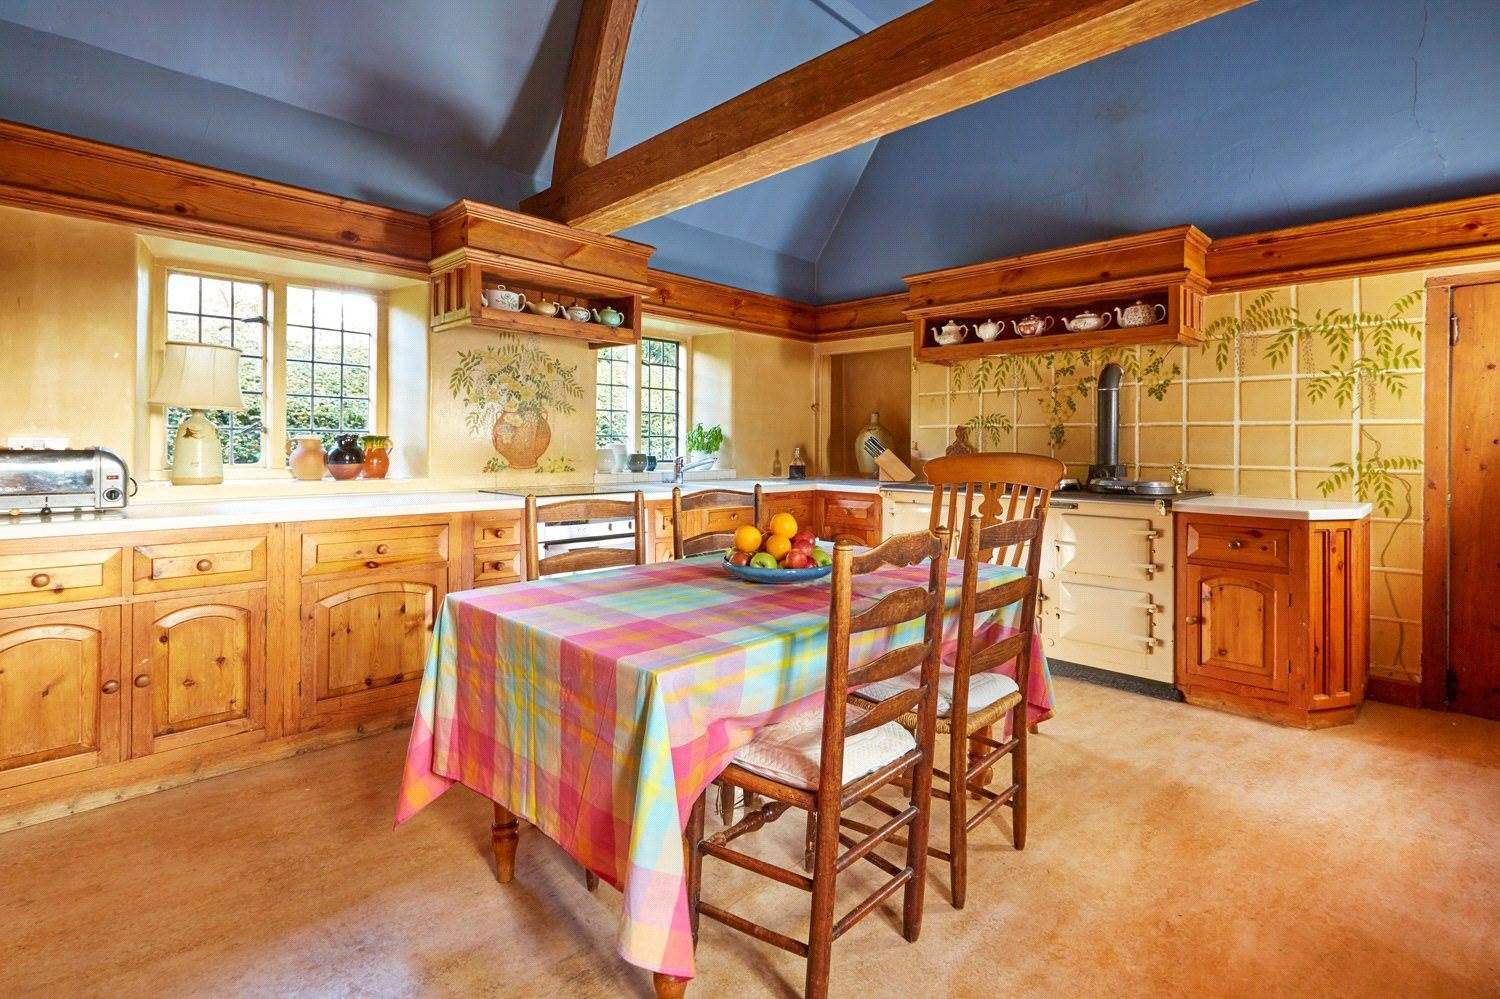 Single Family Home for Sale at Hidcote Boyce, Chipping Campden, Gloucestershire, GL55 Chipping Campden, England